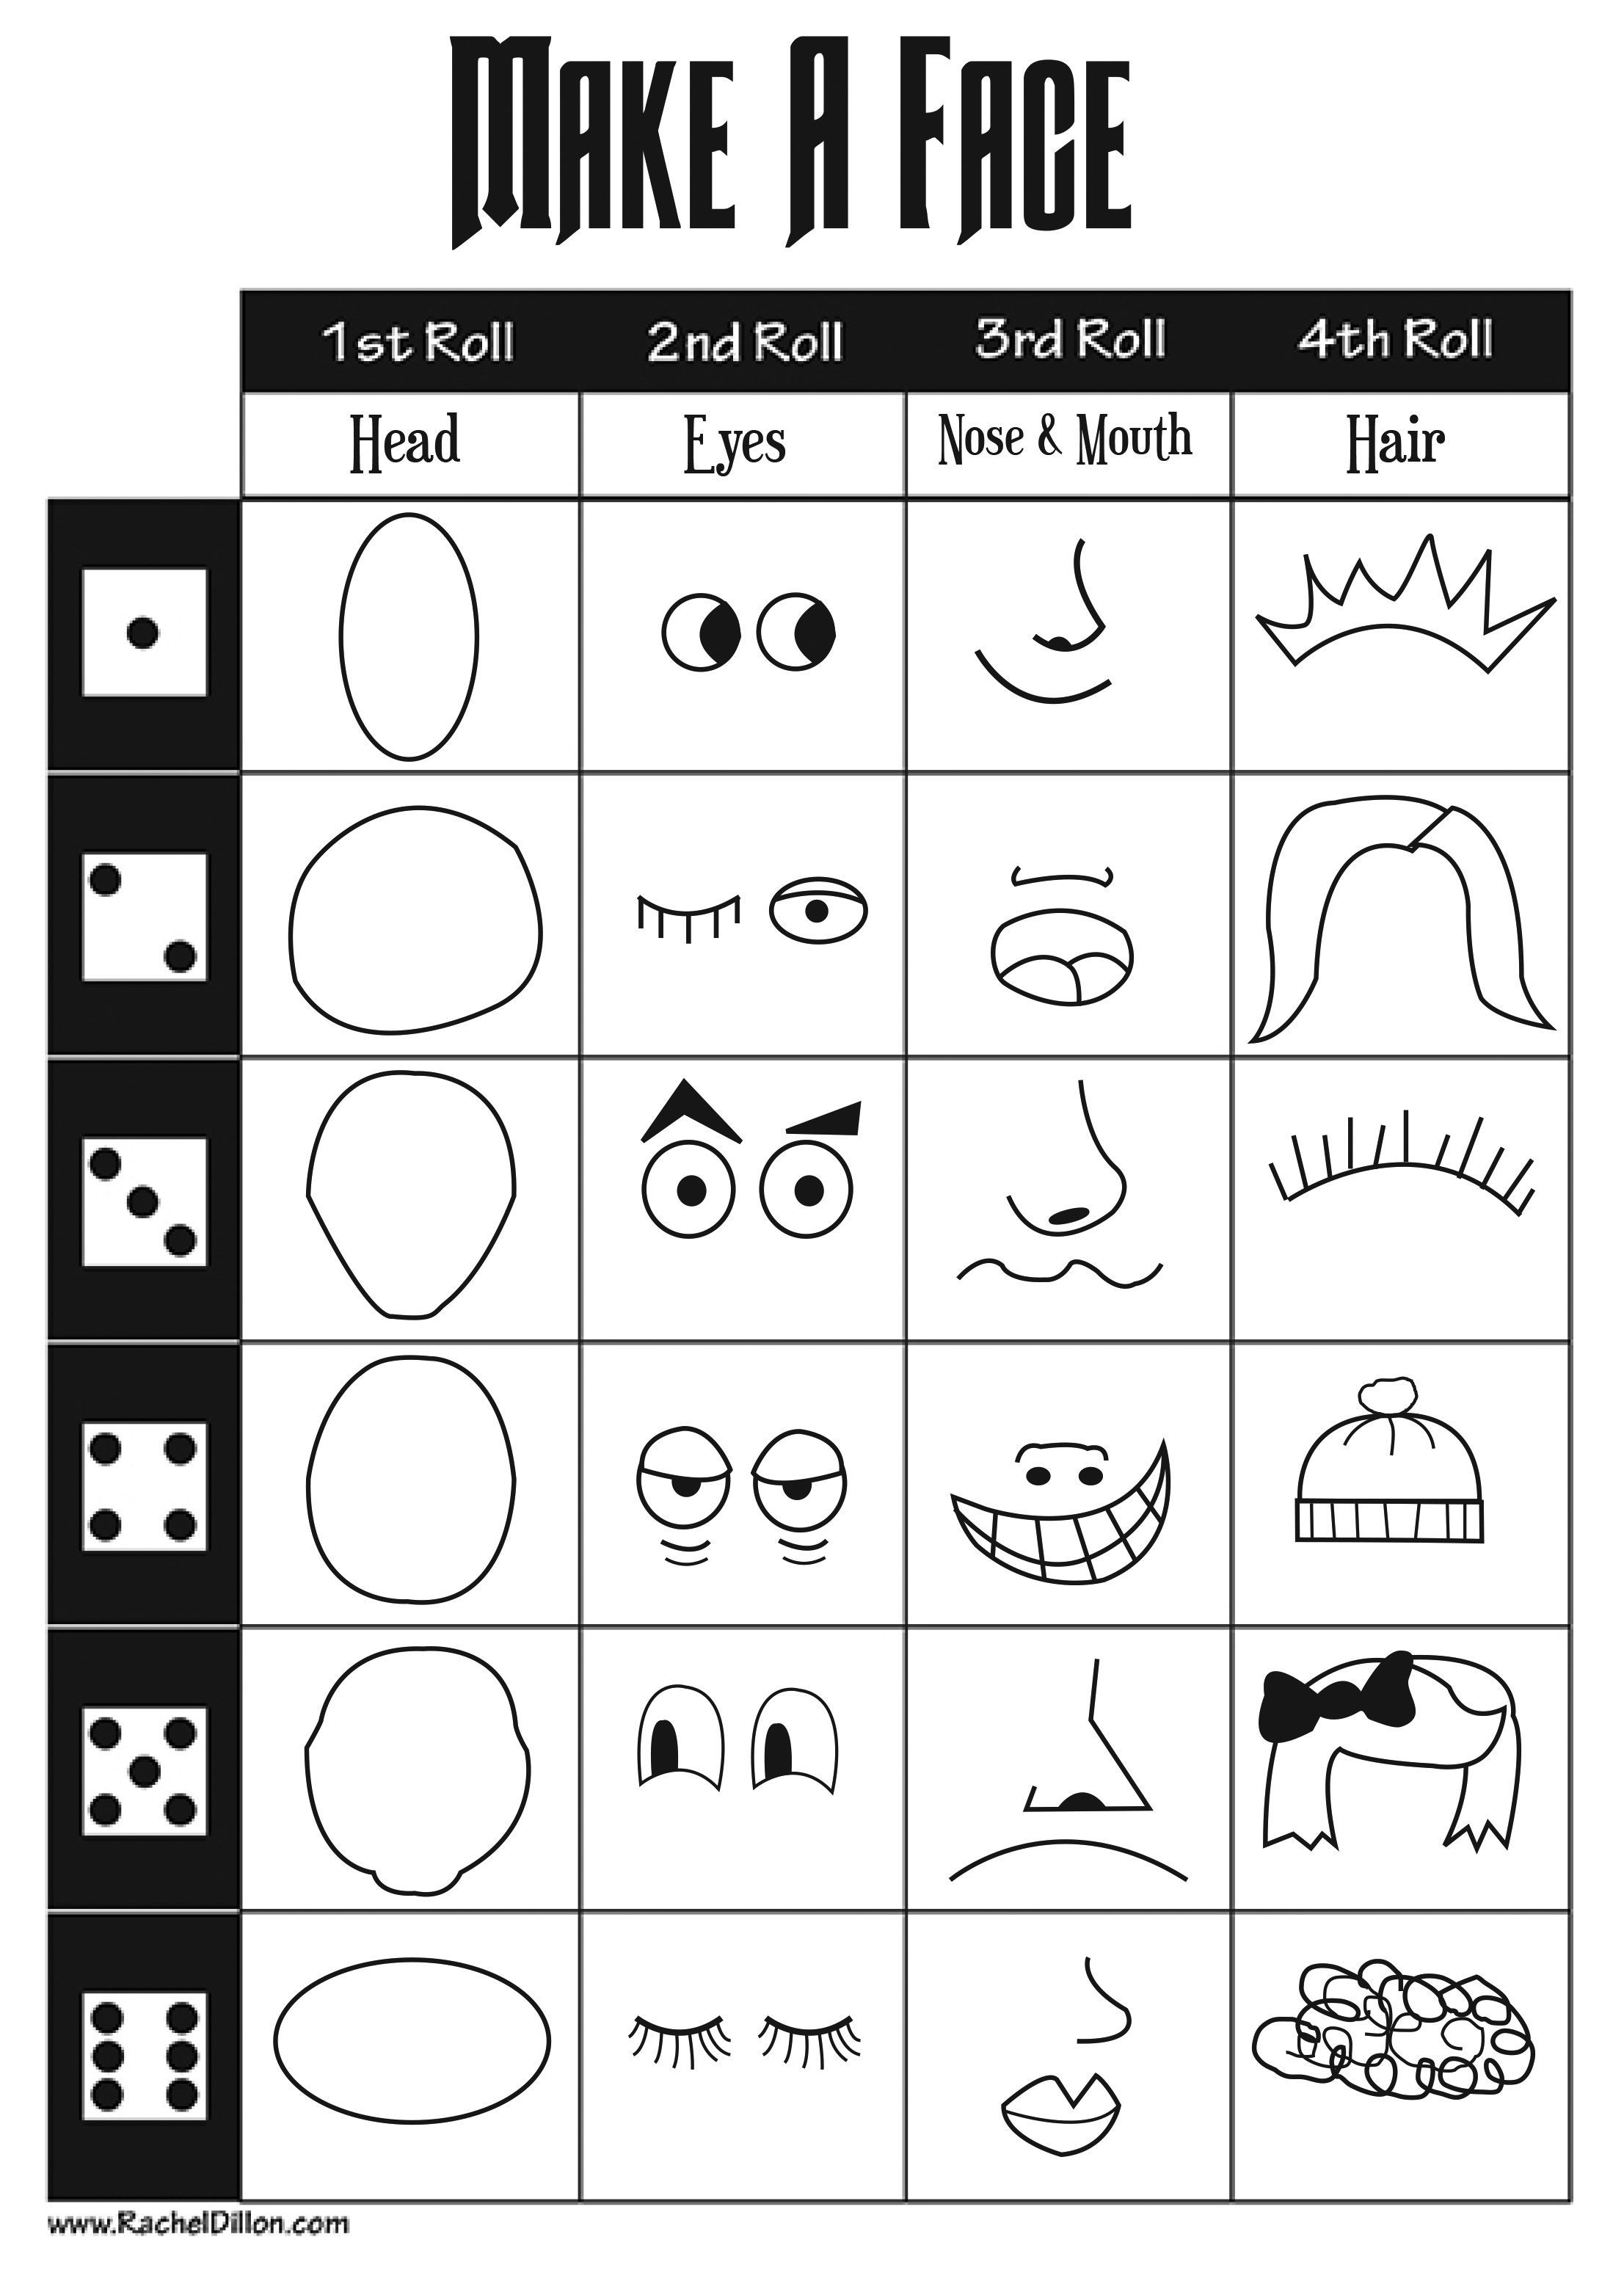 Make A Face The Students Will Take Turns To Roll A Dice Each Roll Will Decide A Feature Of The Face I Will Classroom Art Projects Art For Kids Art Classroom